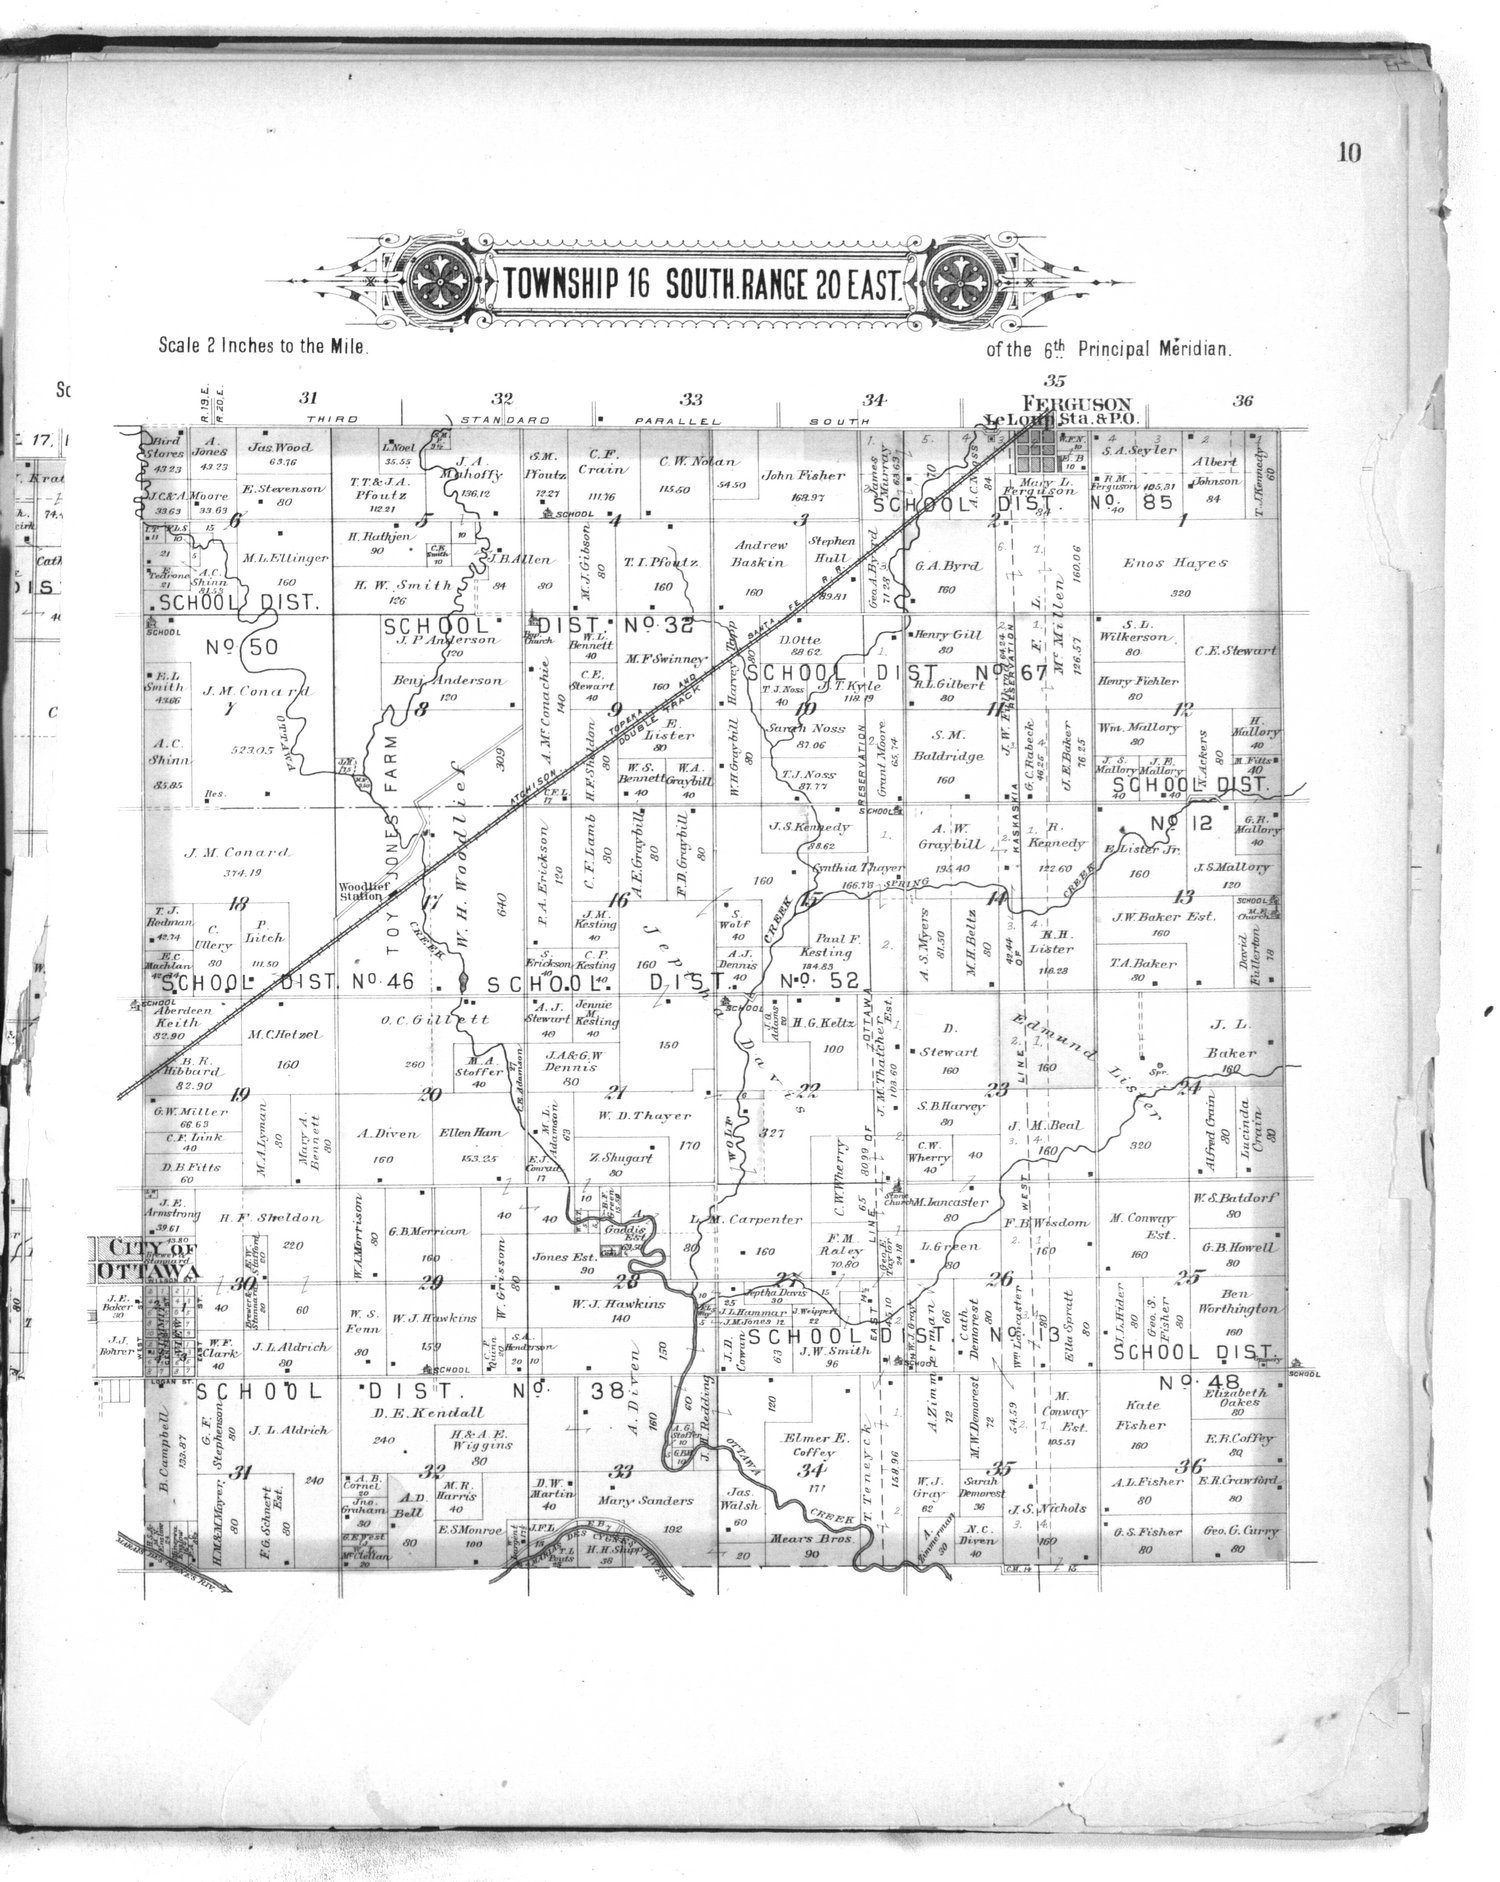 Plat book of Franklin County, Kansas - 10